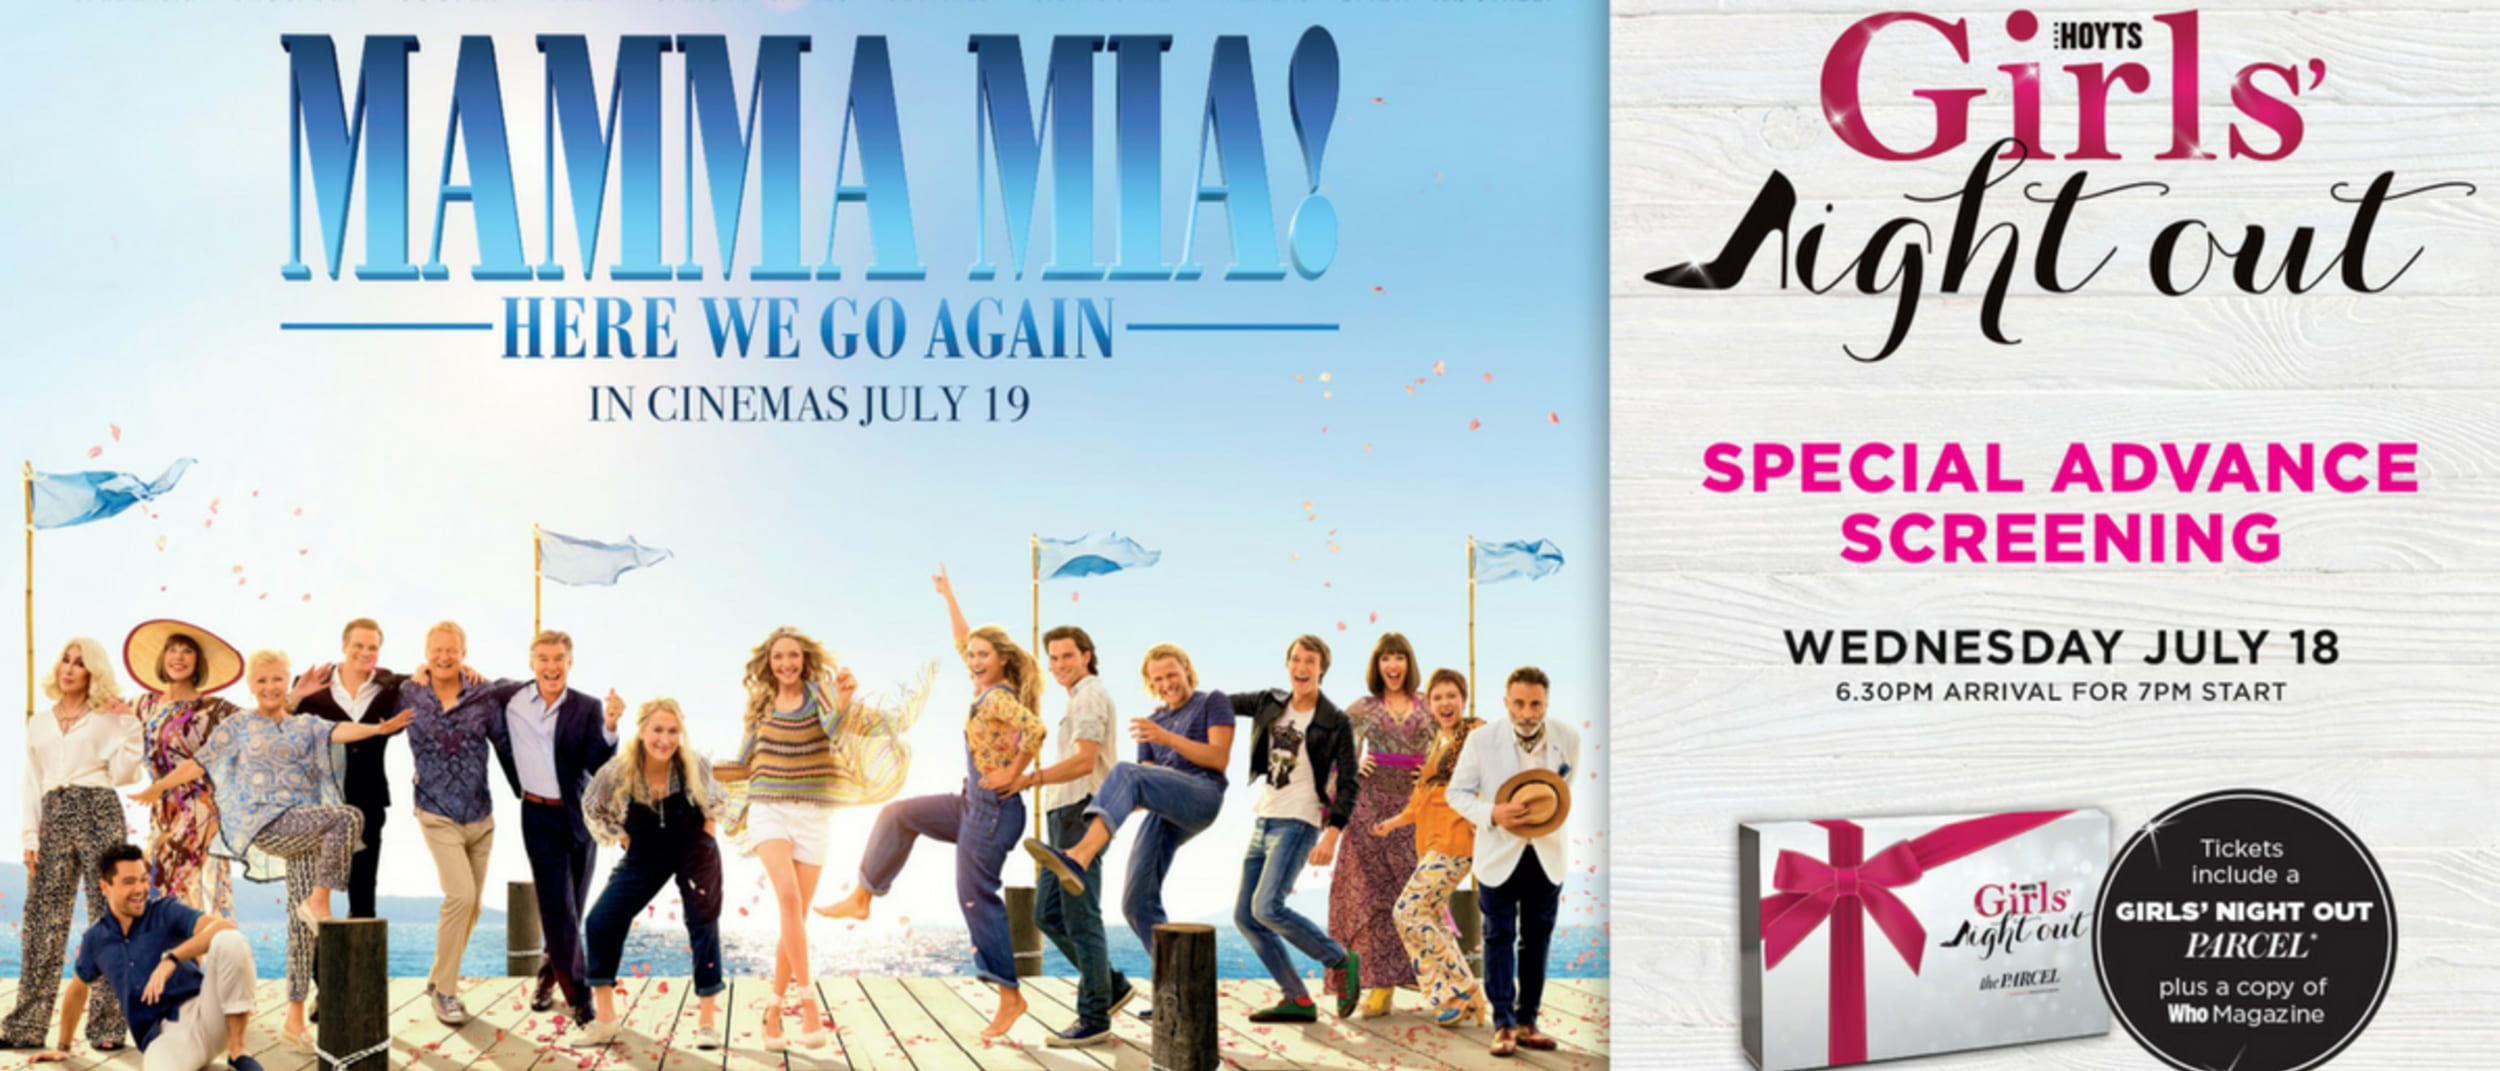 HOYTS Cinemas: Mamma Mia! Here We Go Again - Girls' Night Out